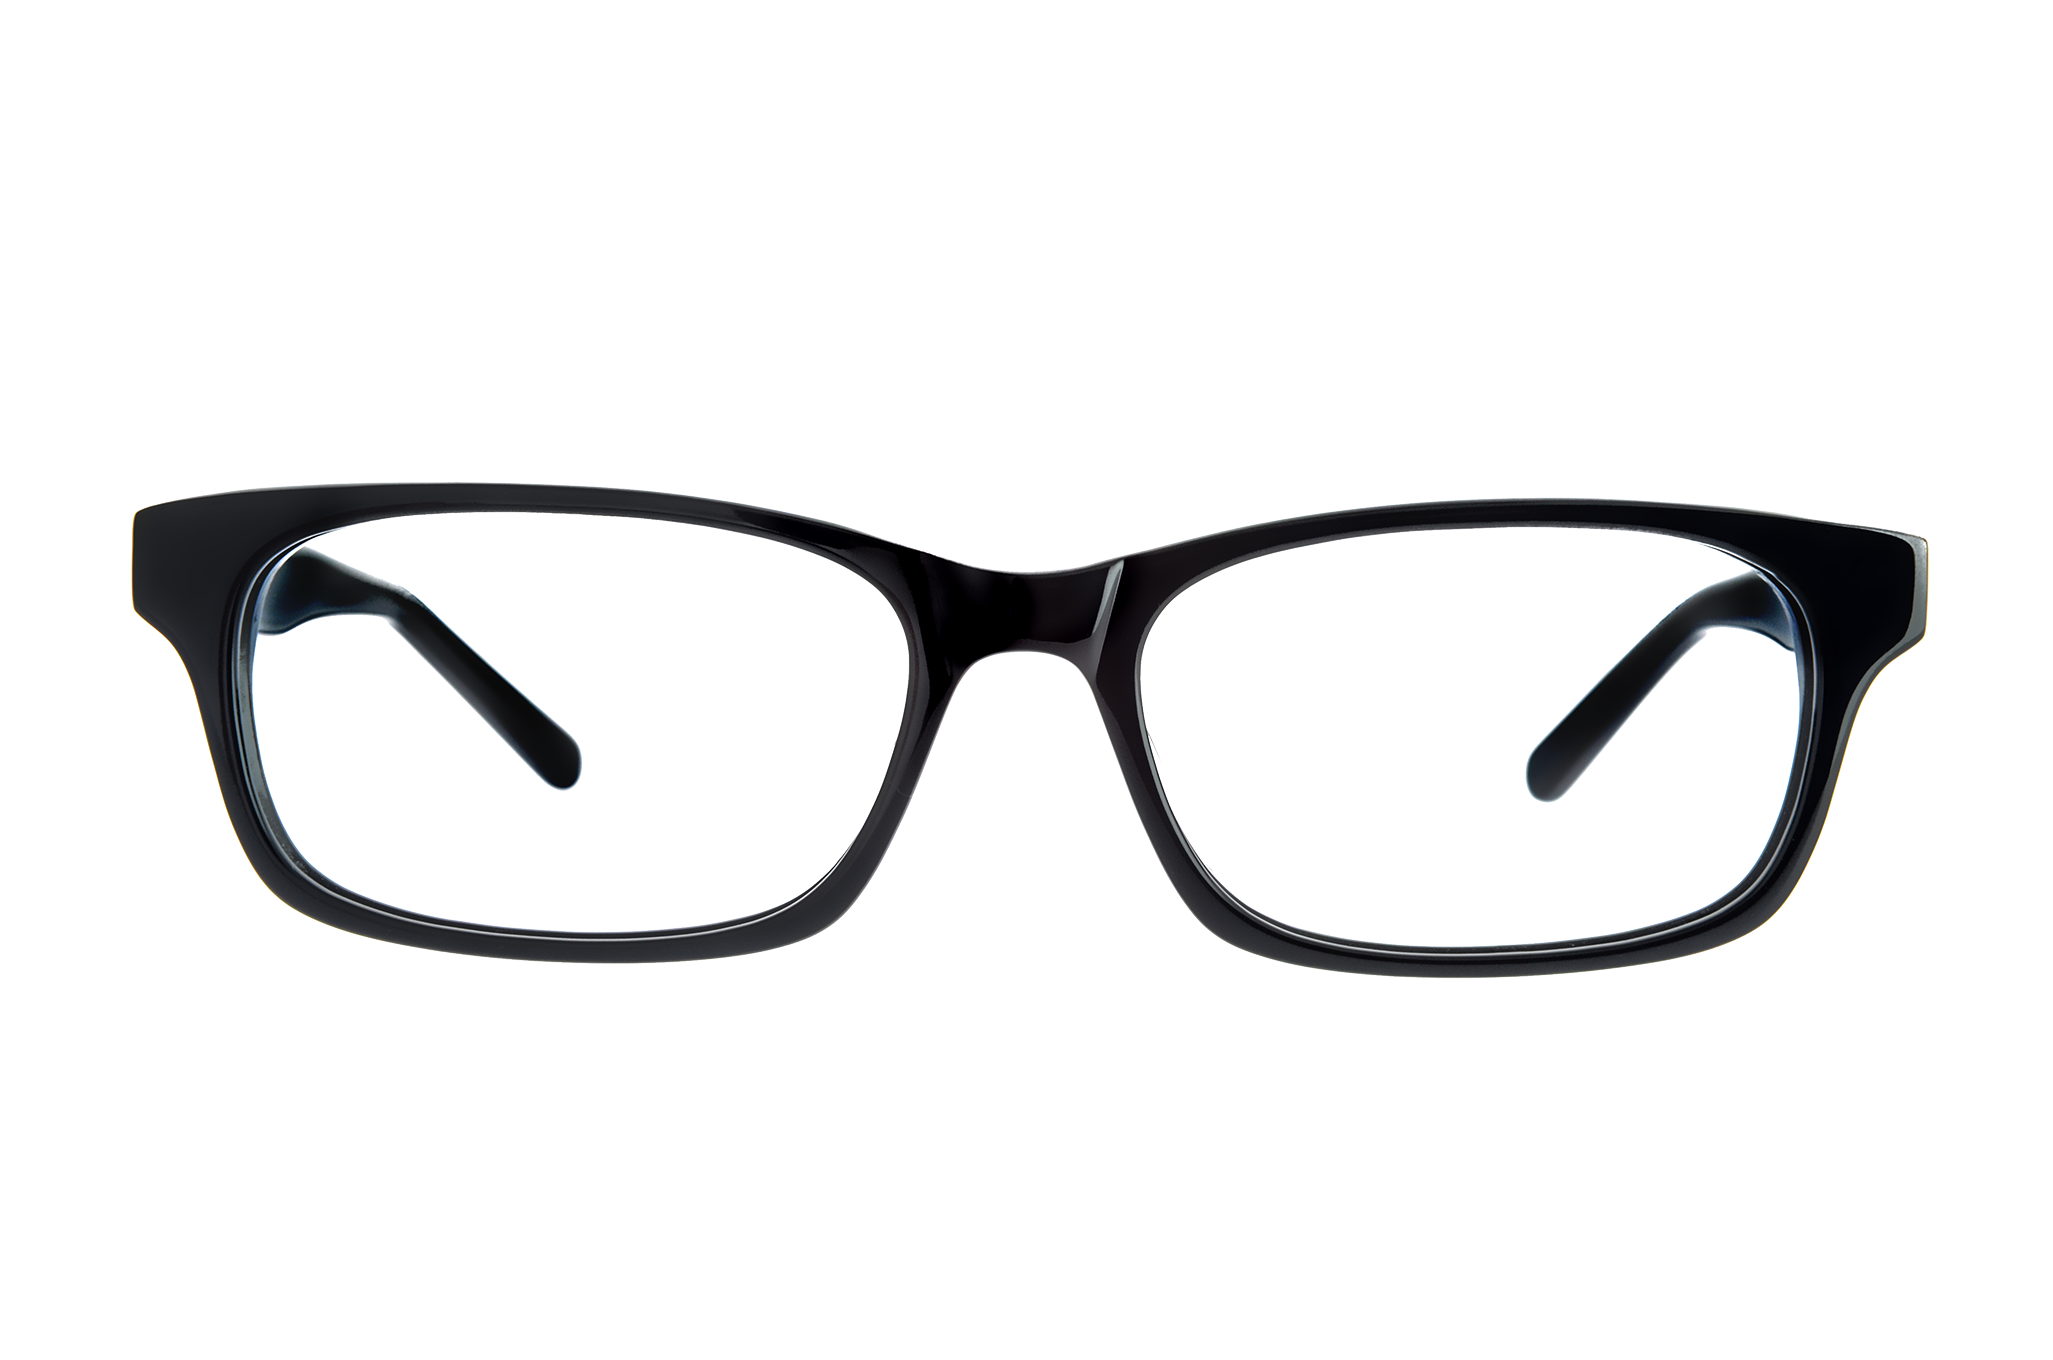 Glass clipart optical